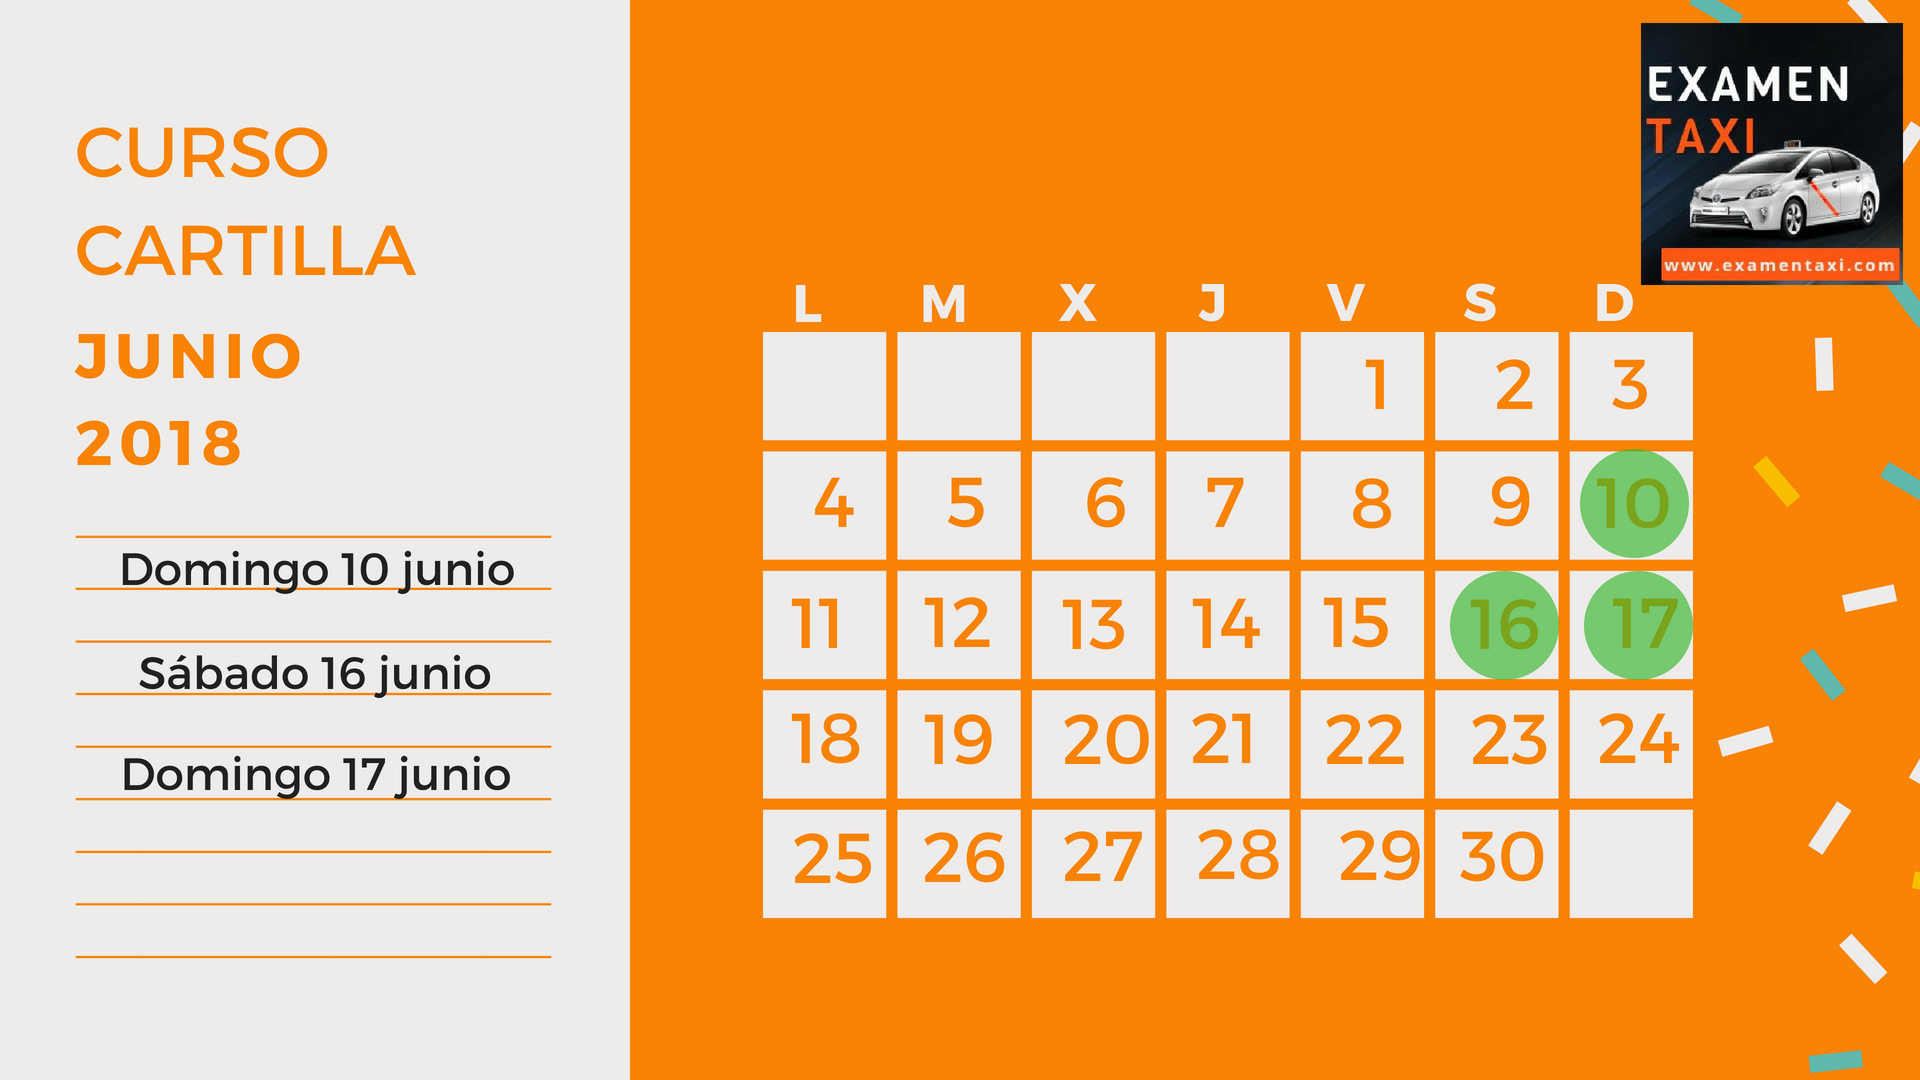 Calendario Curso Cartilla Junio 2018